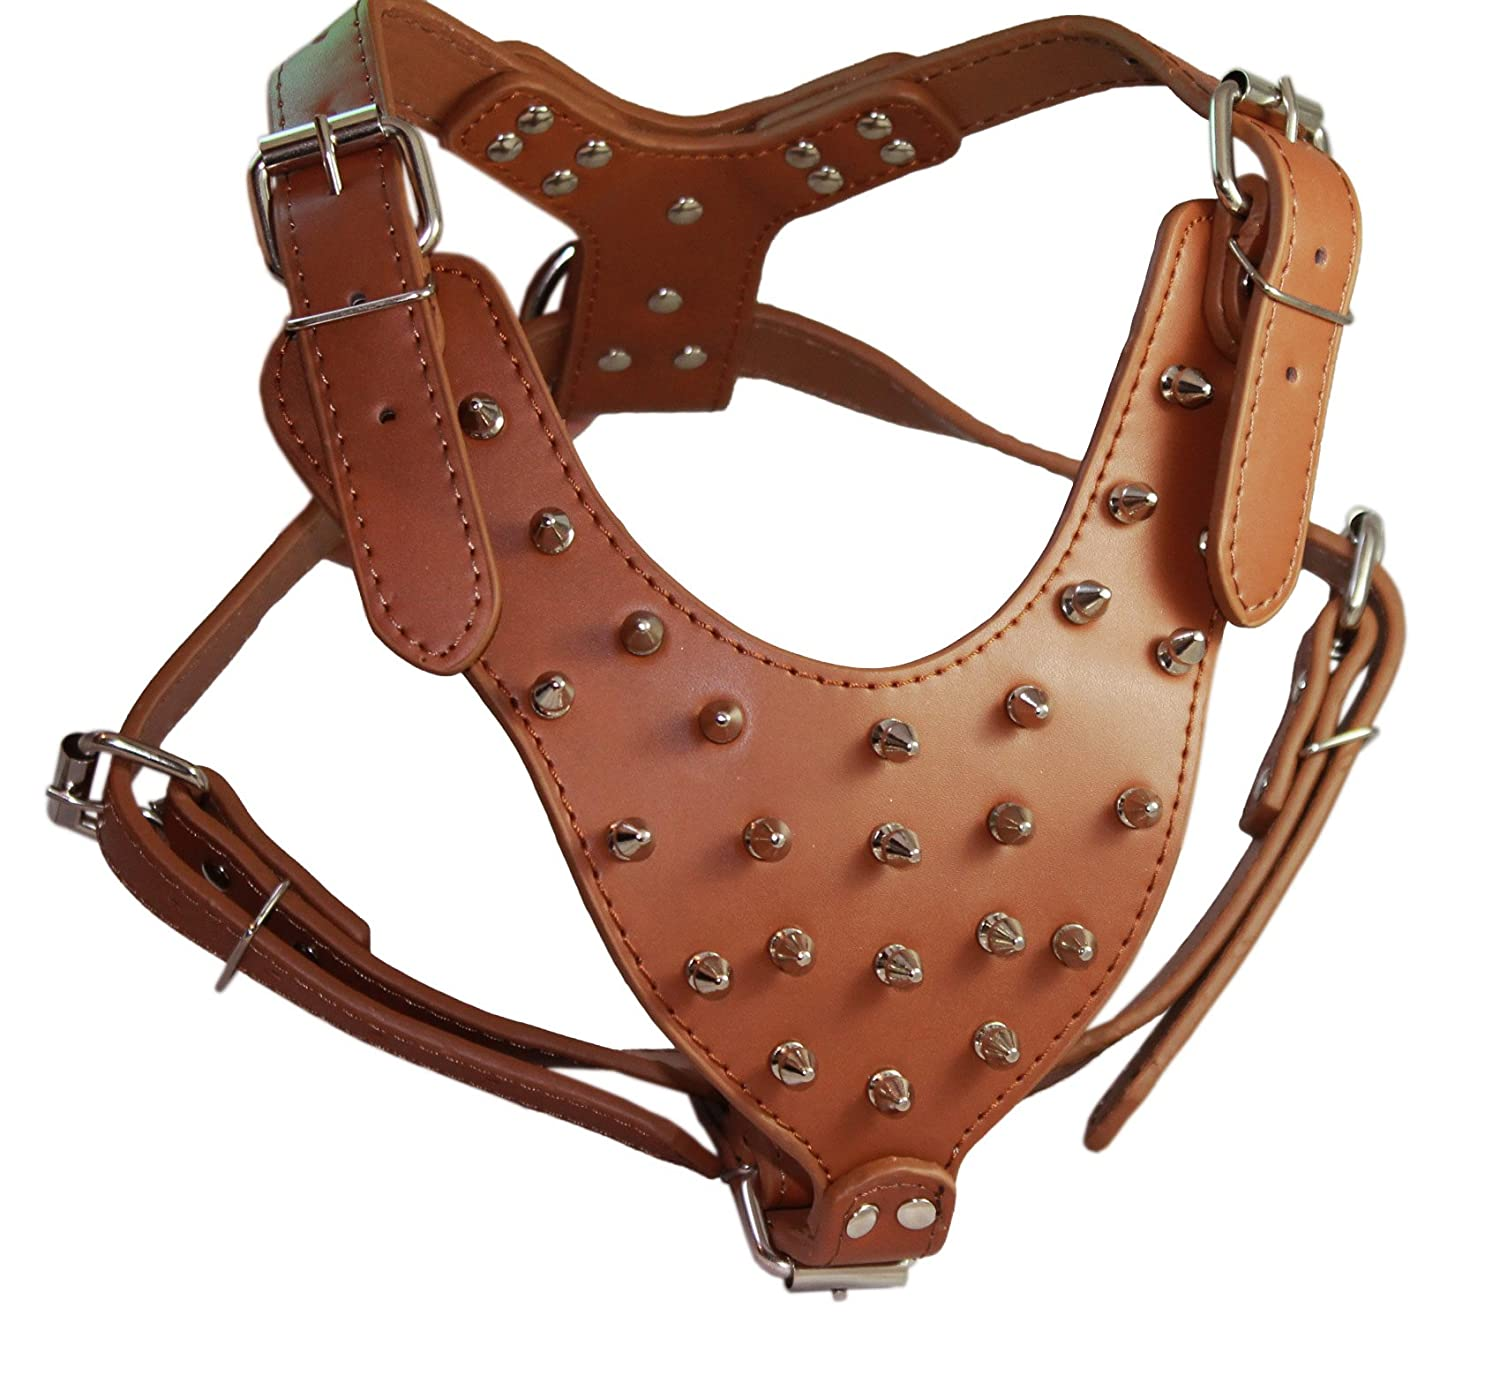 Spiked Leather Dog Harness Large Brown 26